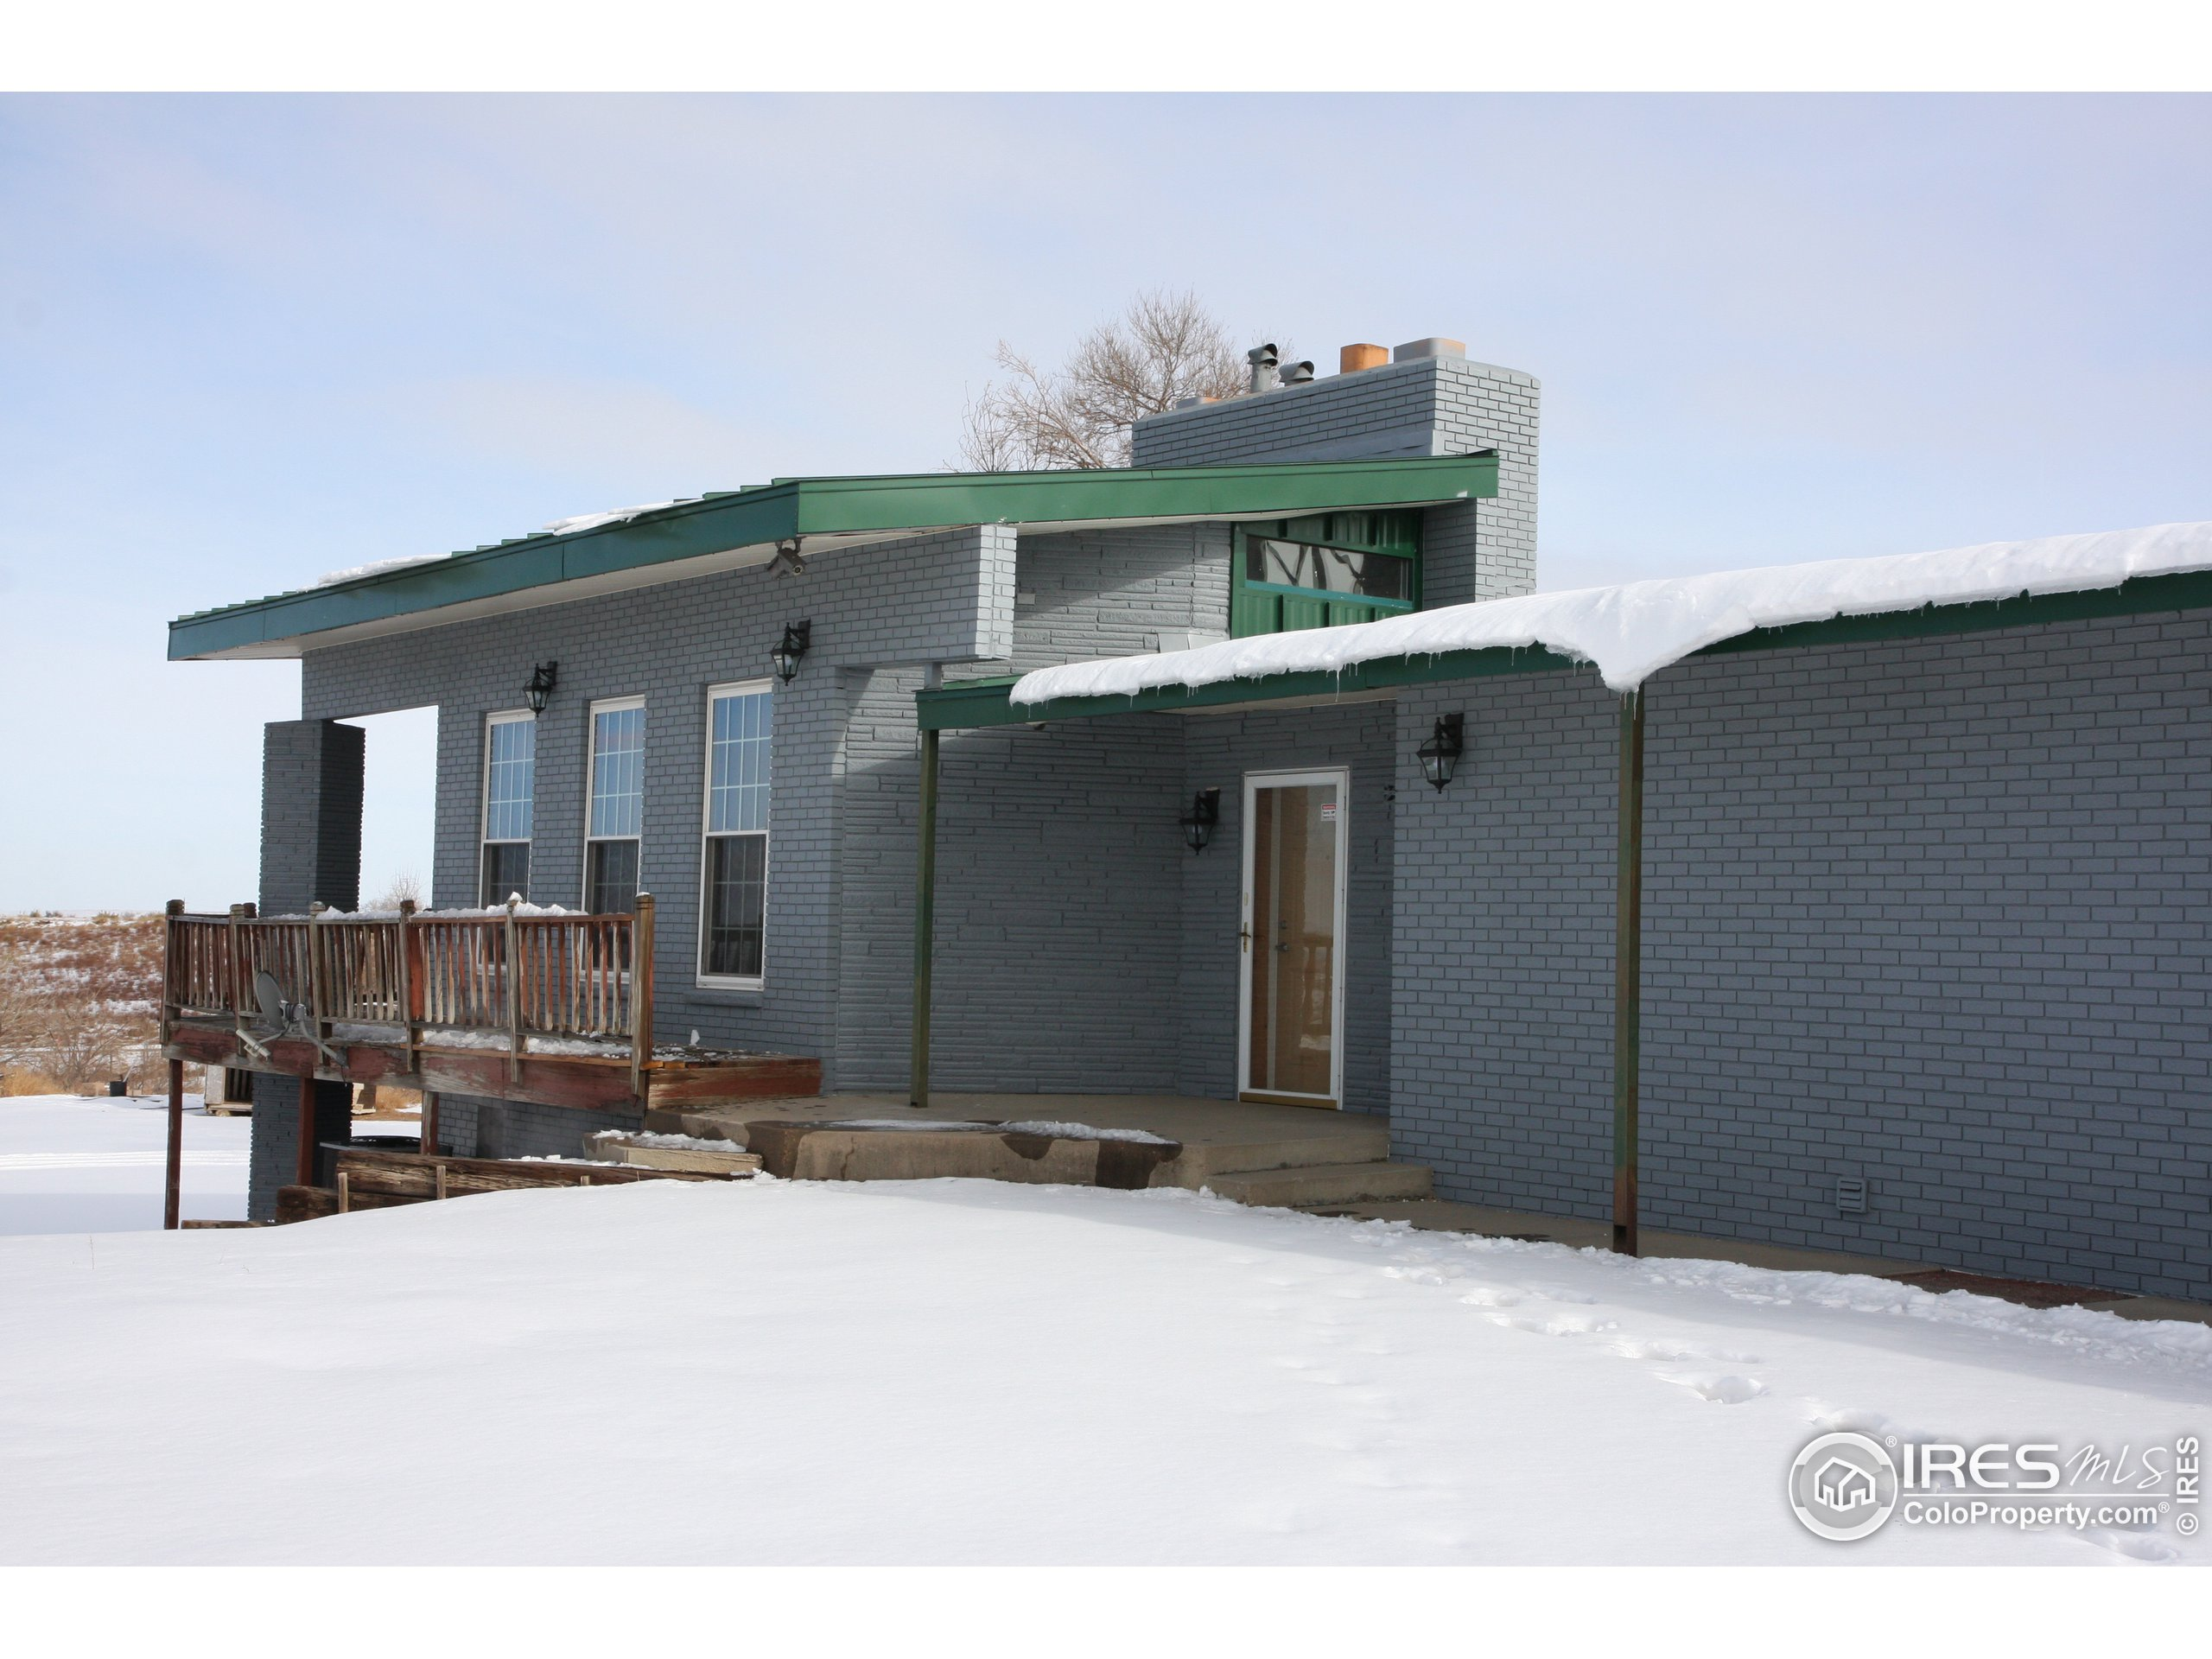 Remodeled Kitchen with all wood cabinets and concrete countertops.